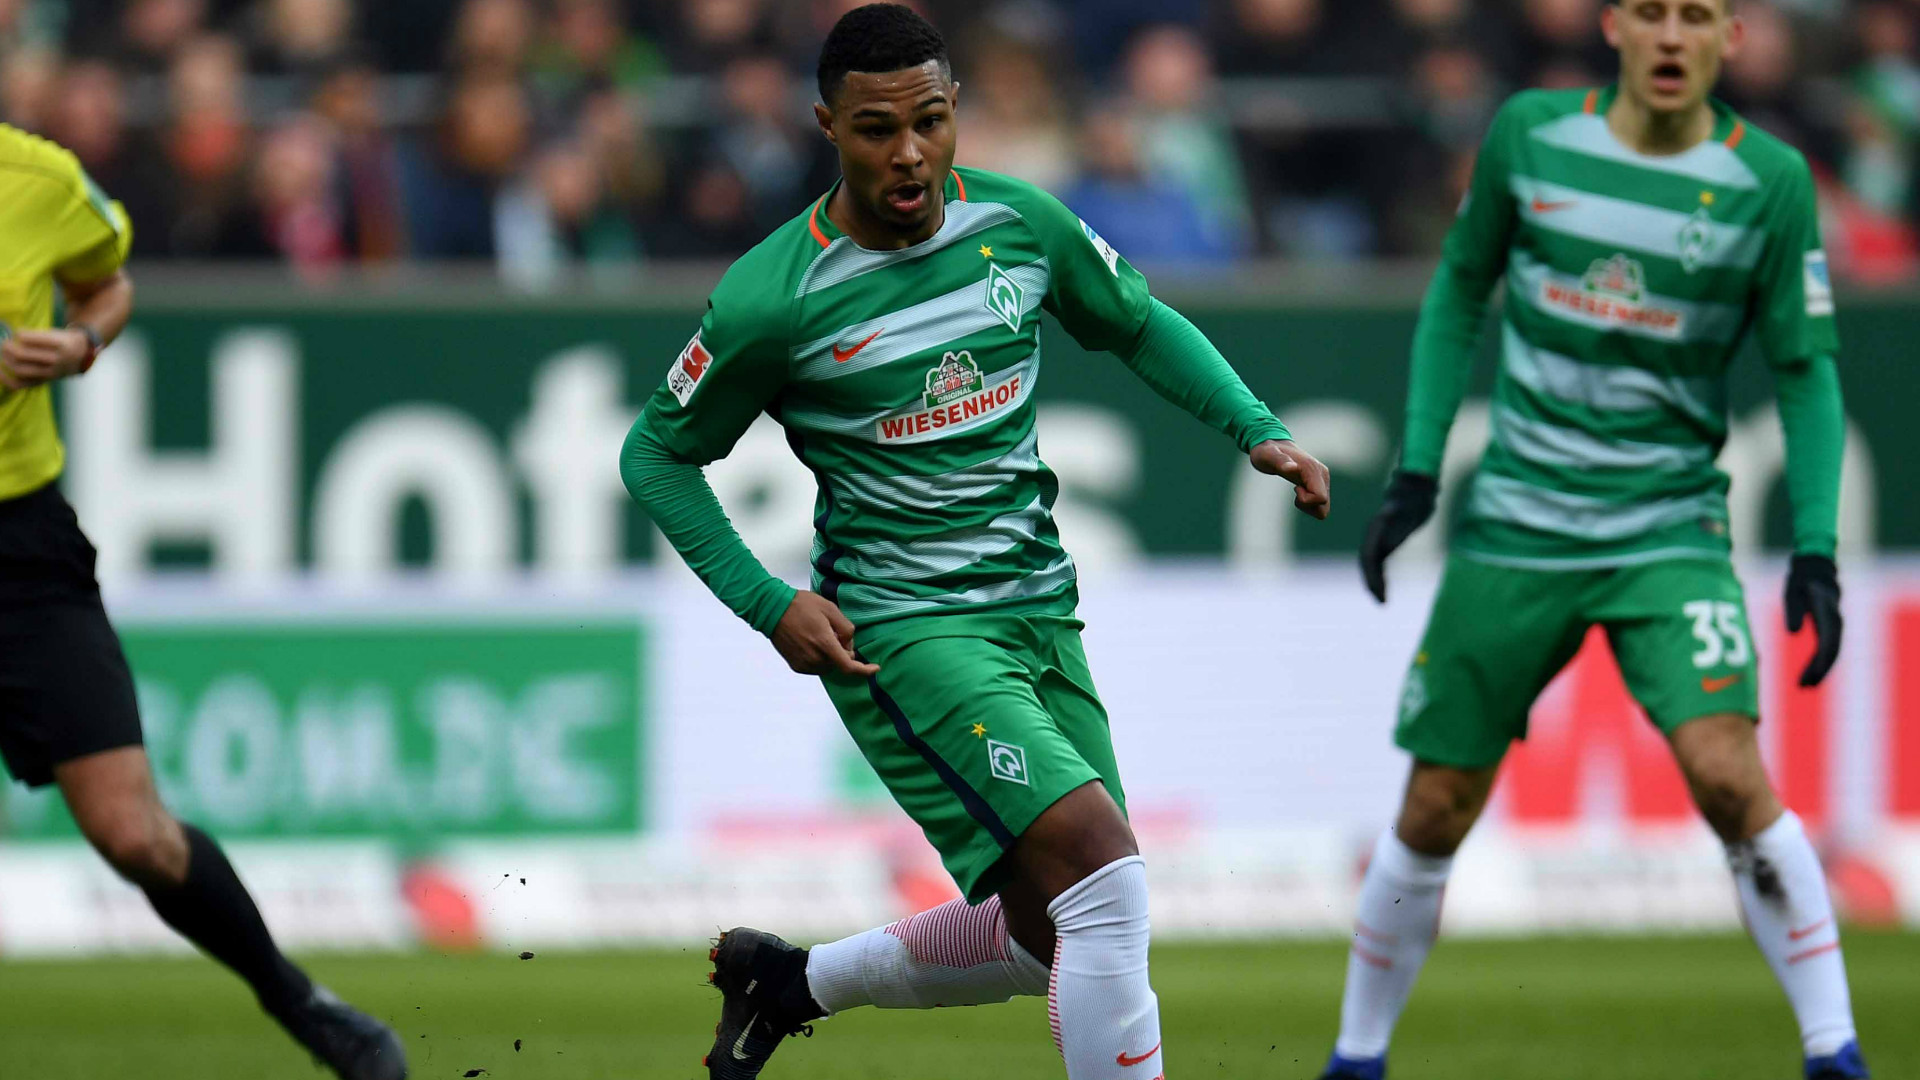 Serge Gnabry in action for Werder Bremen.